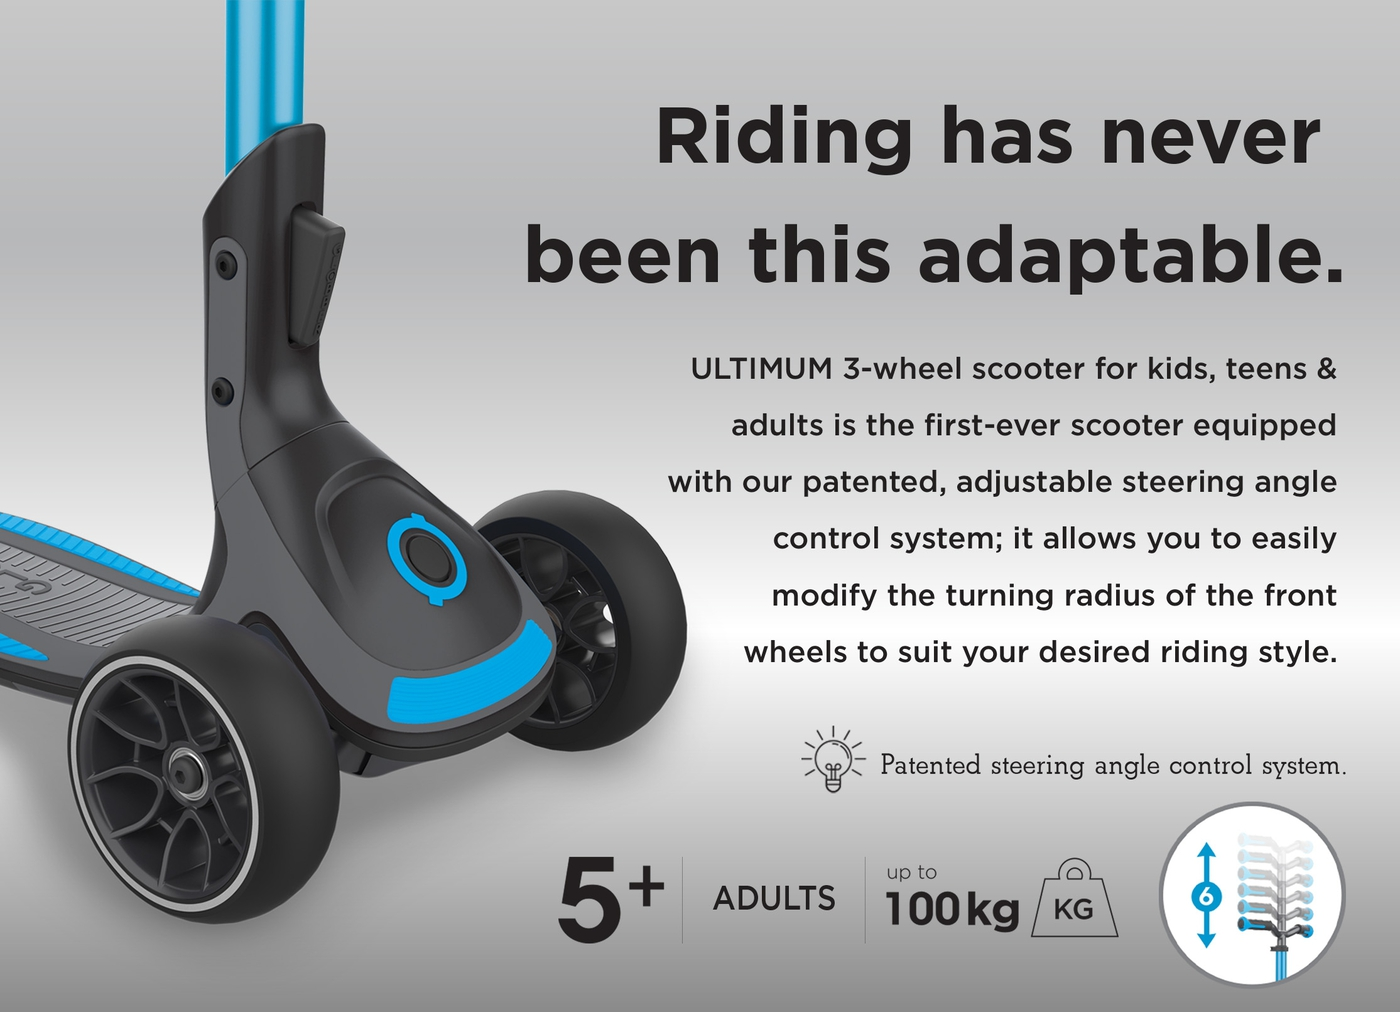 Riding has never been this adaptable.